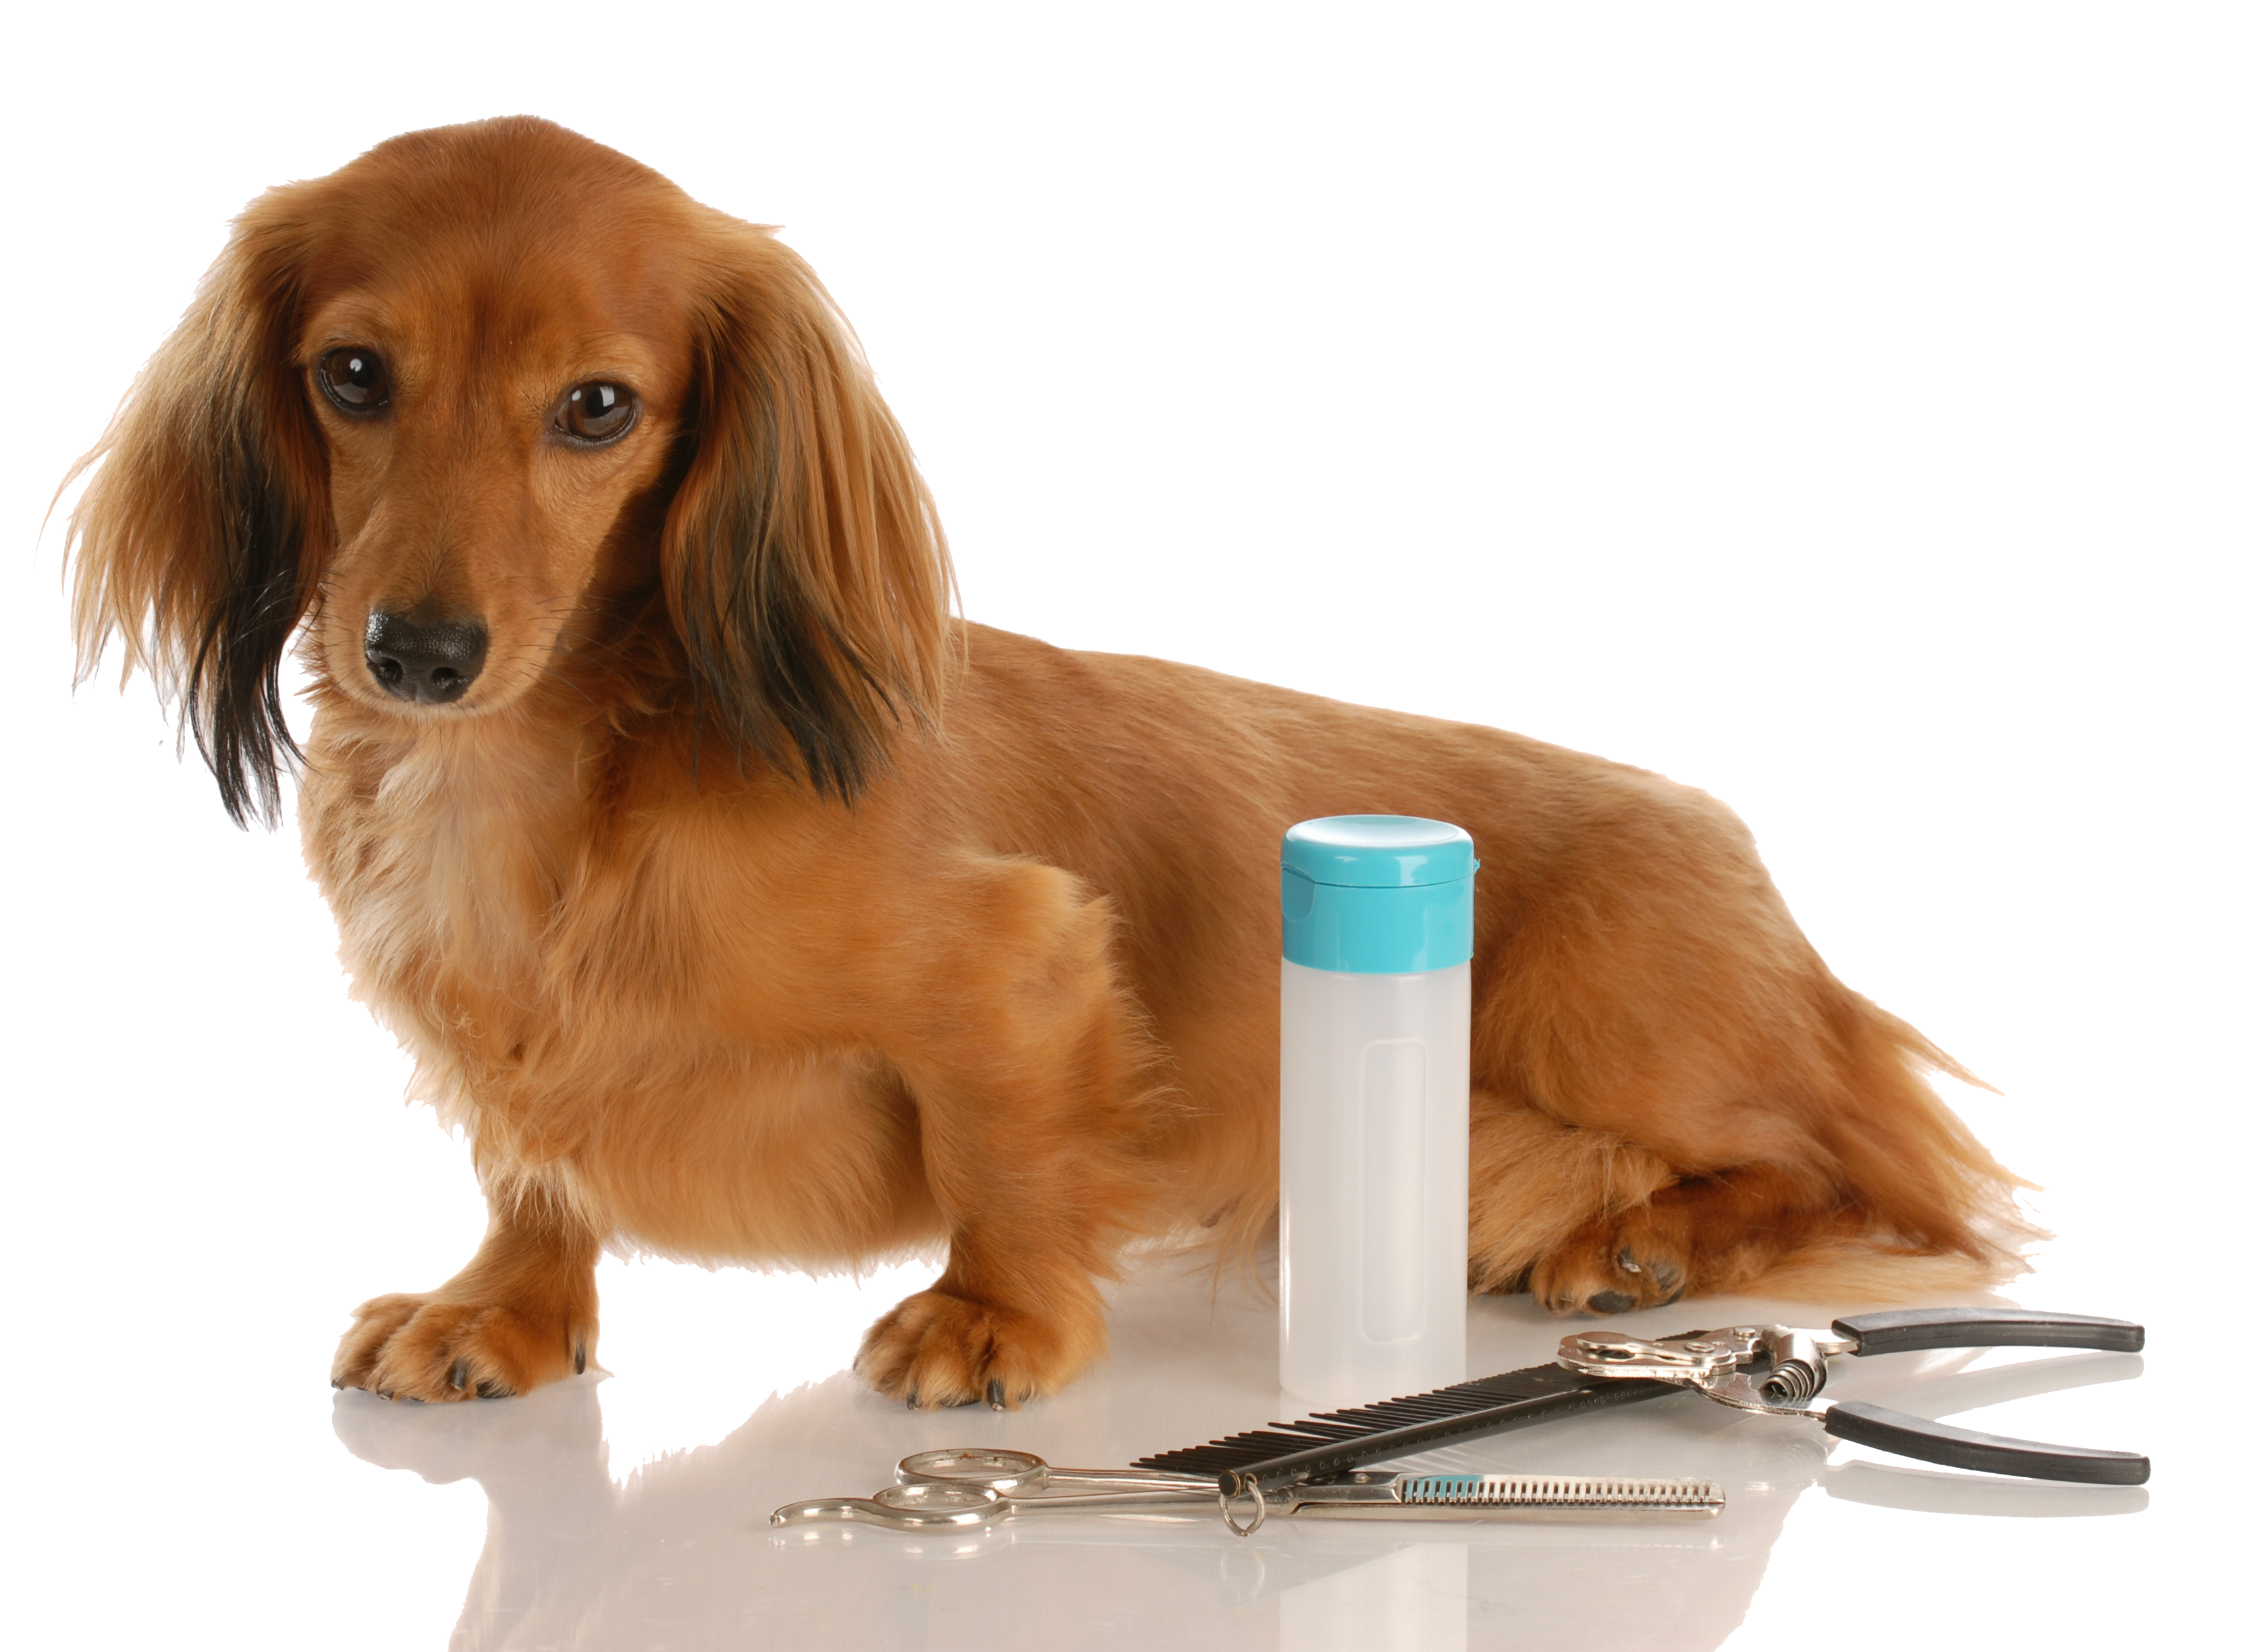 Top Dog Kennel Provides Private Indoor And Outdoor Runs Optional Playtime And Daily Walks Quiet Stress Free Dog Grooming Pet Grooming Long Haired Dachshund